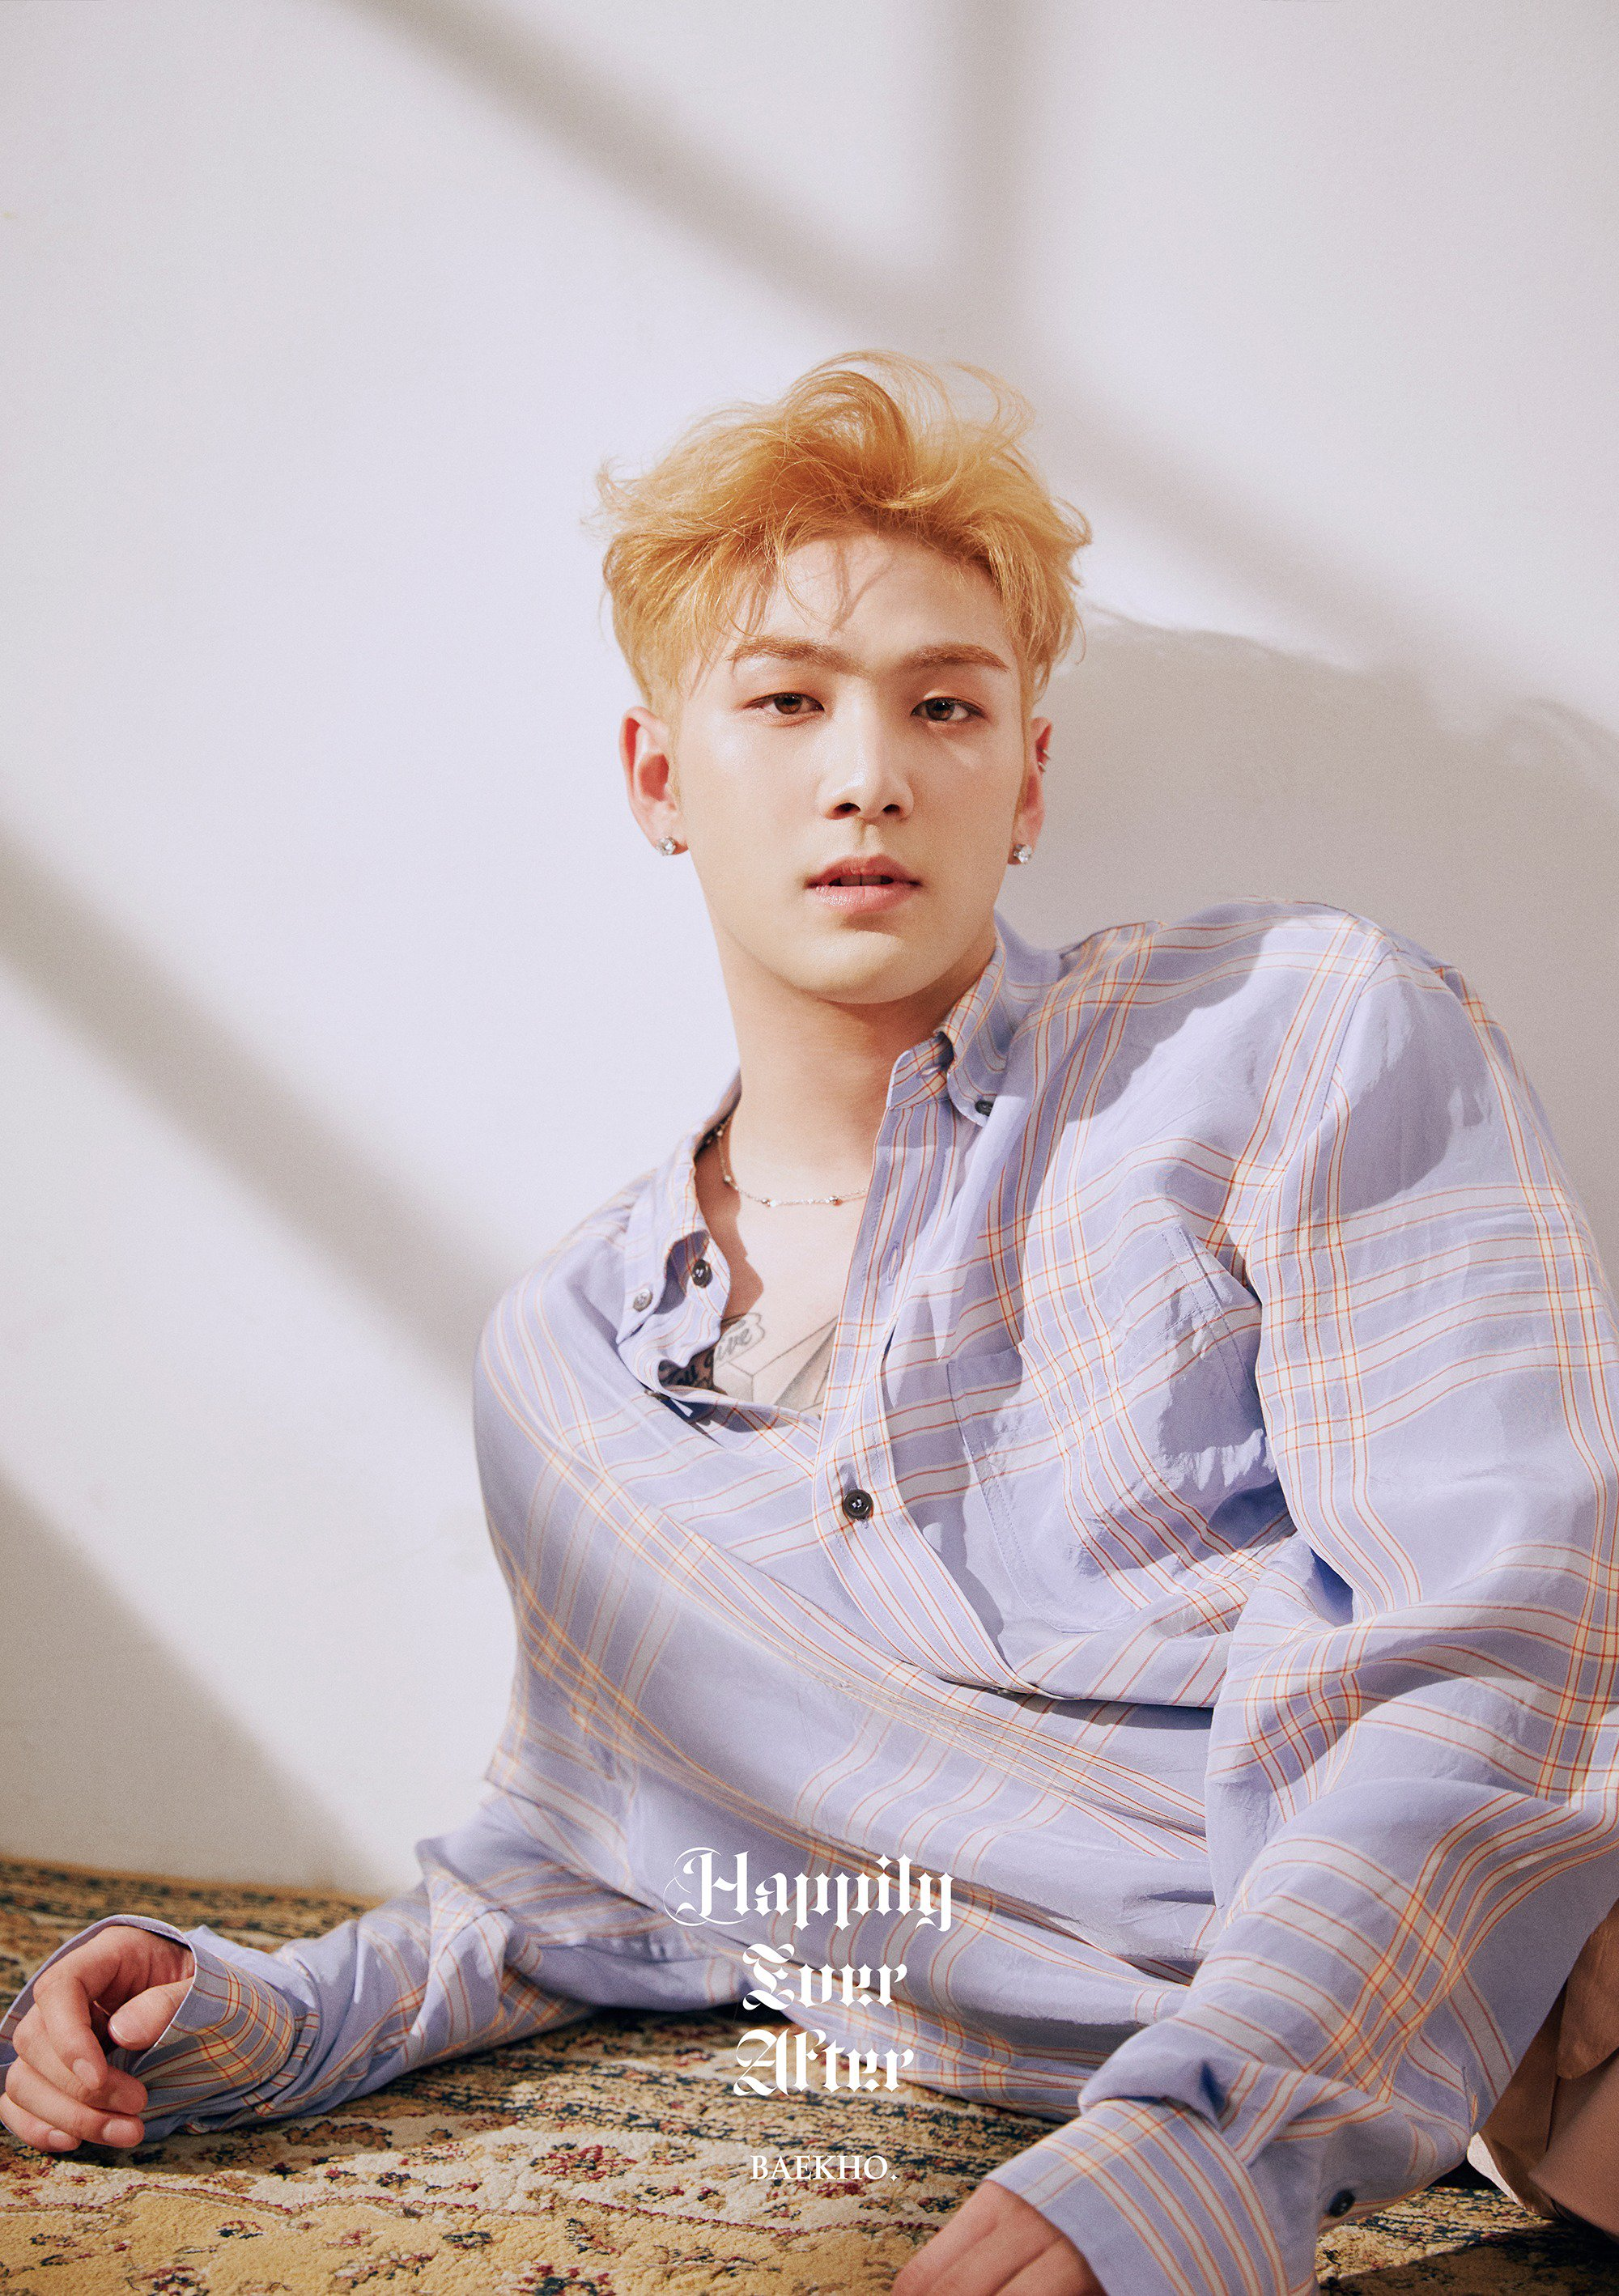 NU'EST Members Profile (Updated!)